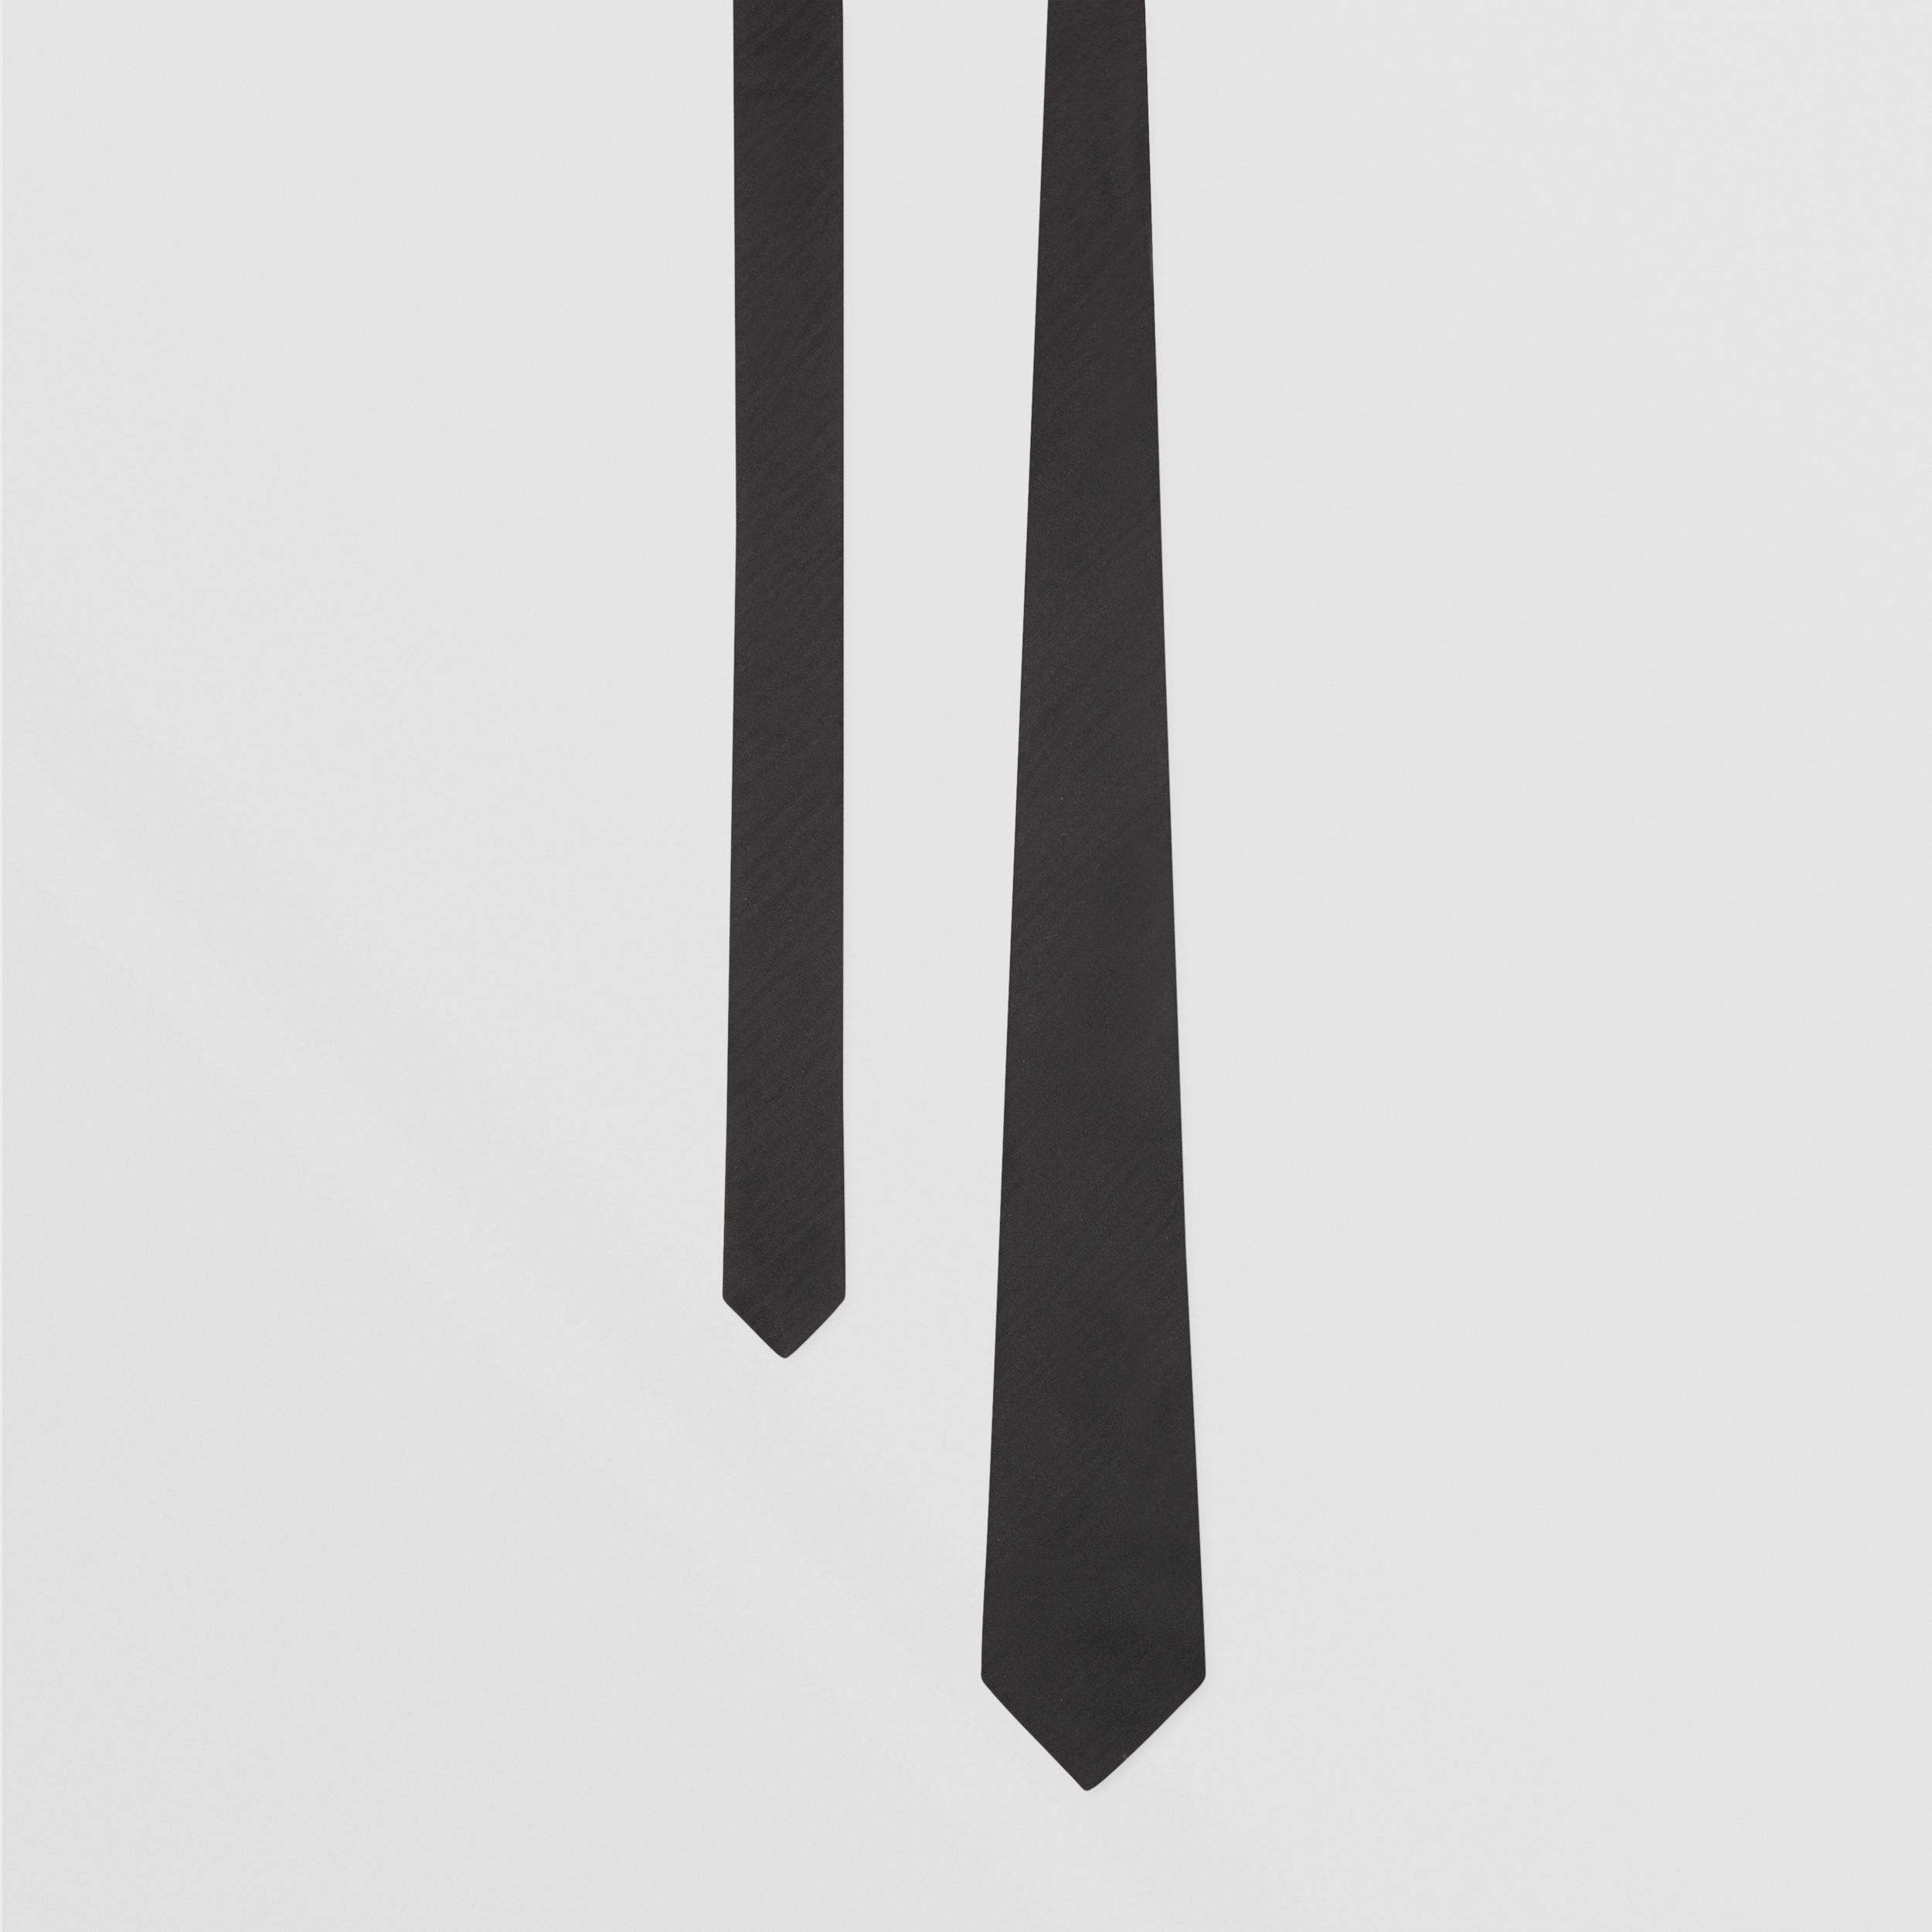 Classic Cut Silk Moire Jacquard Tie in Black - Men | Burberry - 1